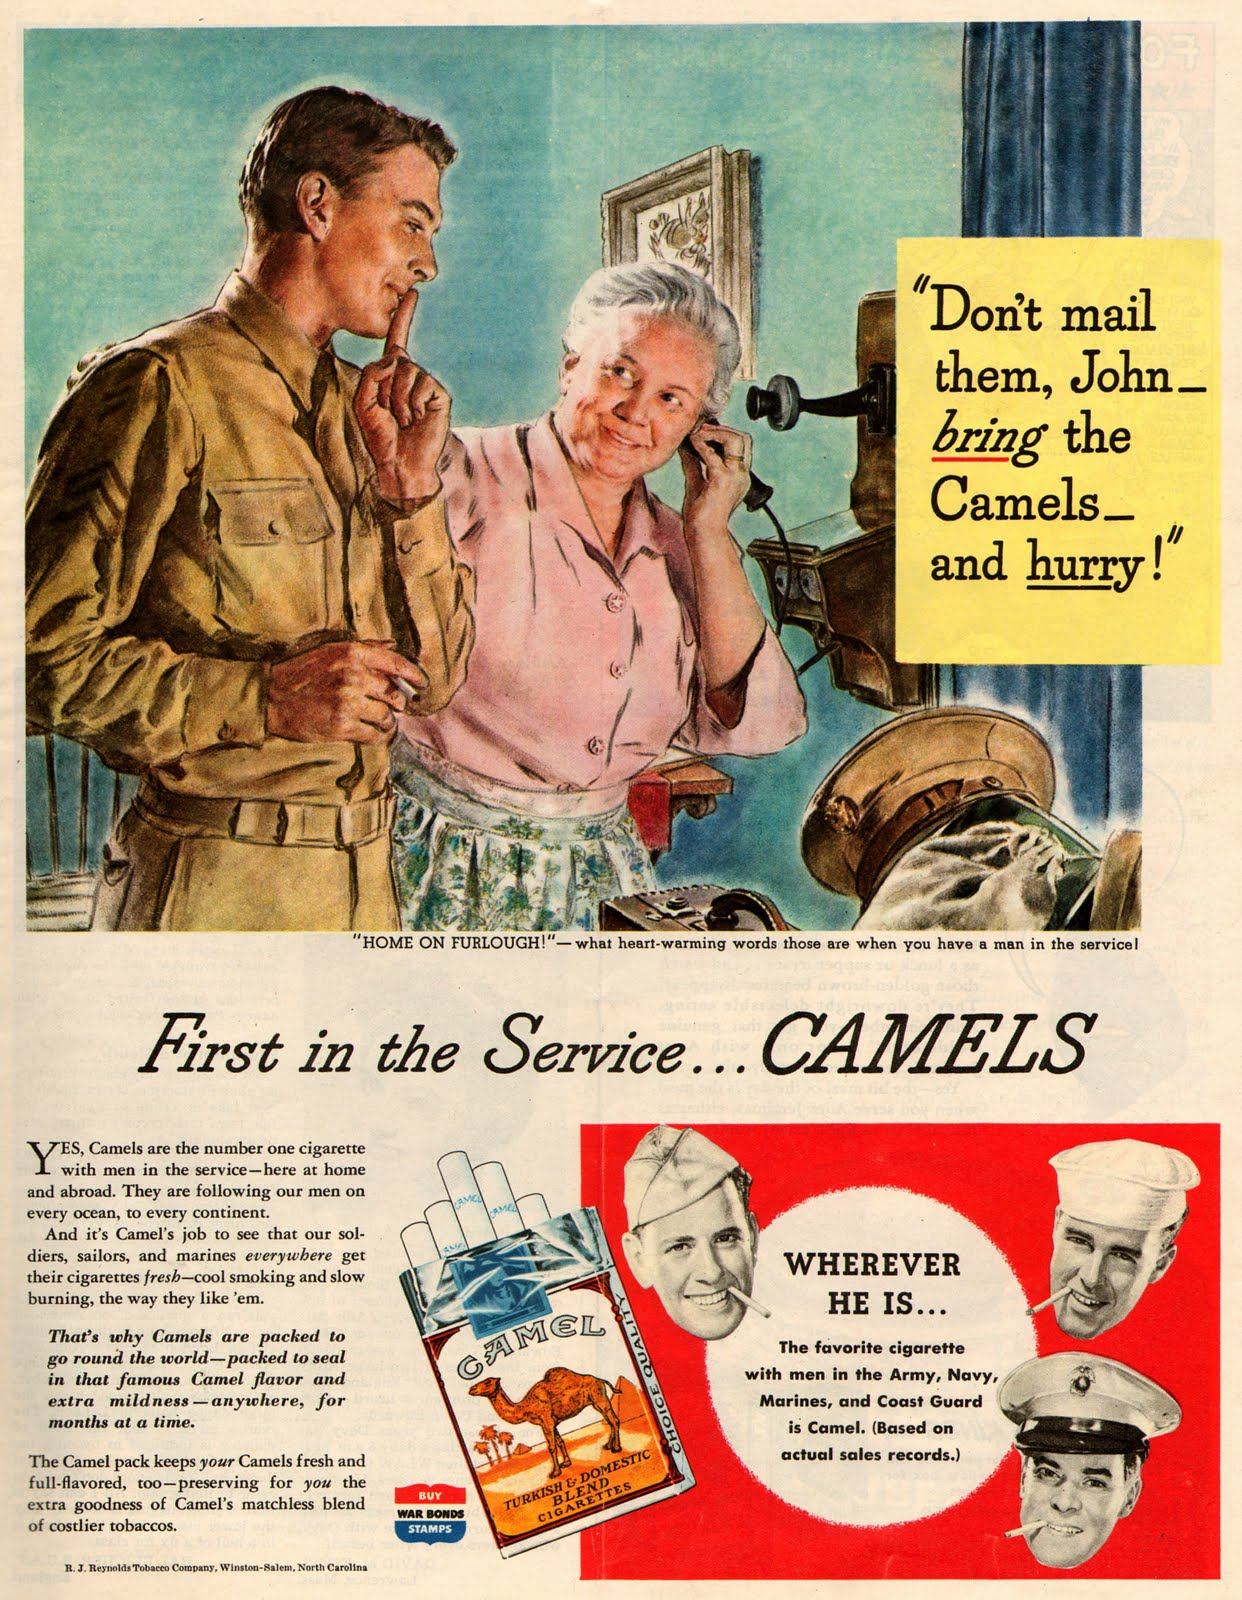 LIST OF CAMEL CIGARETTES